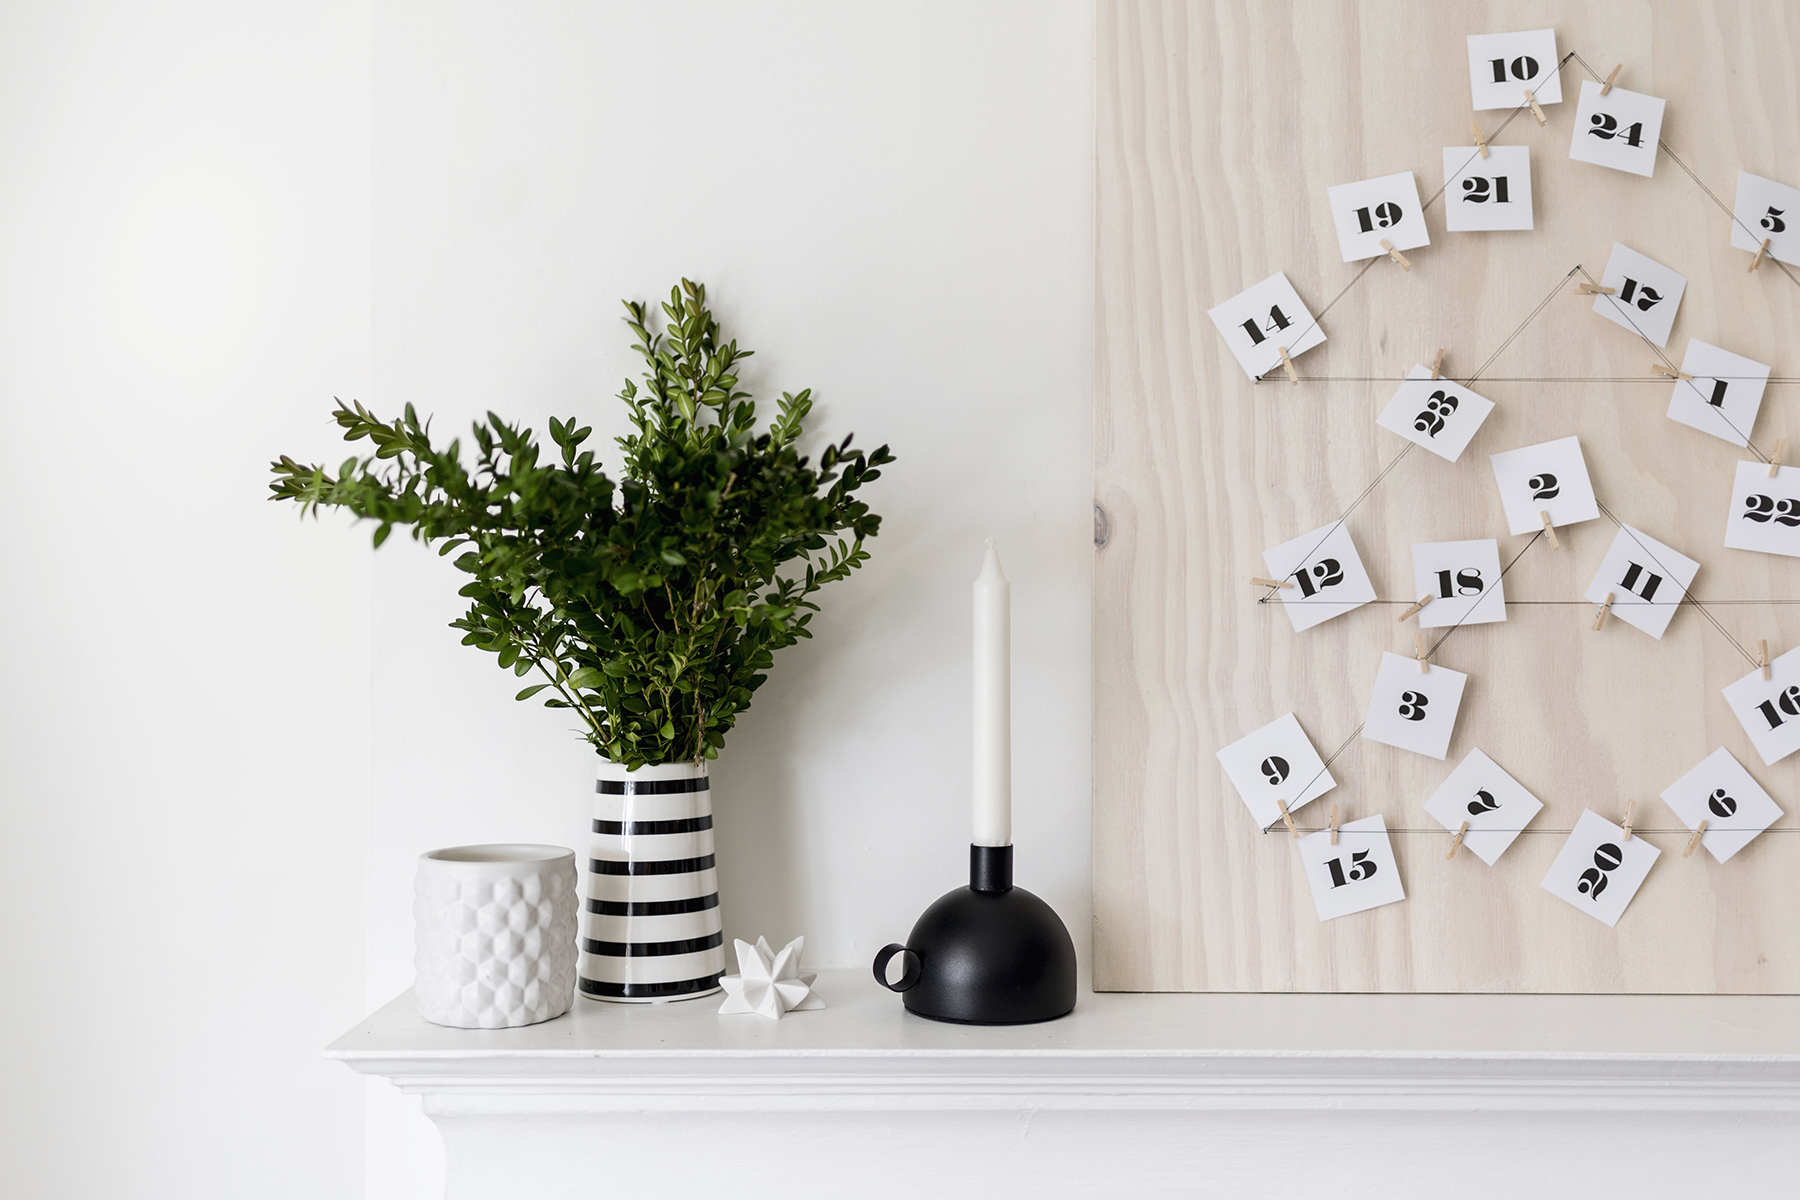 DIY Advent Calendar: 47 inspirational ideas 94